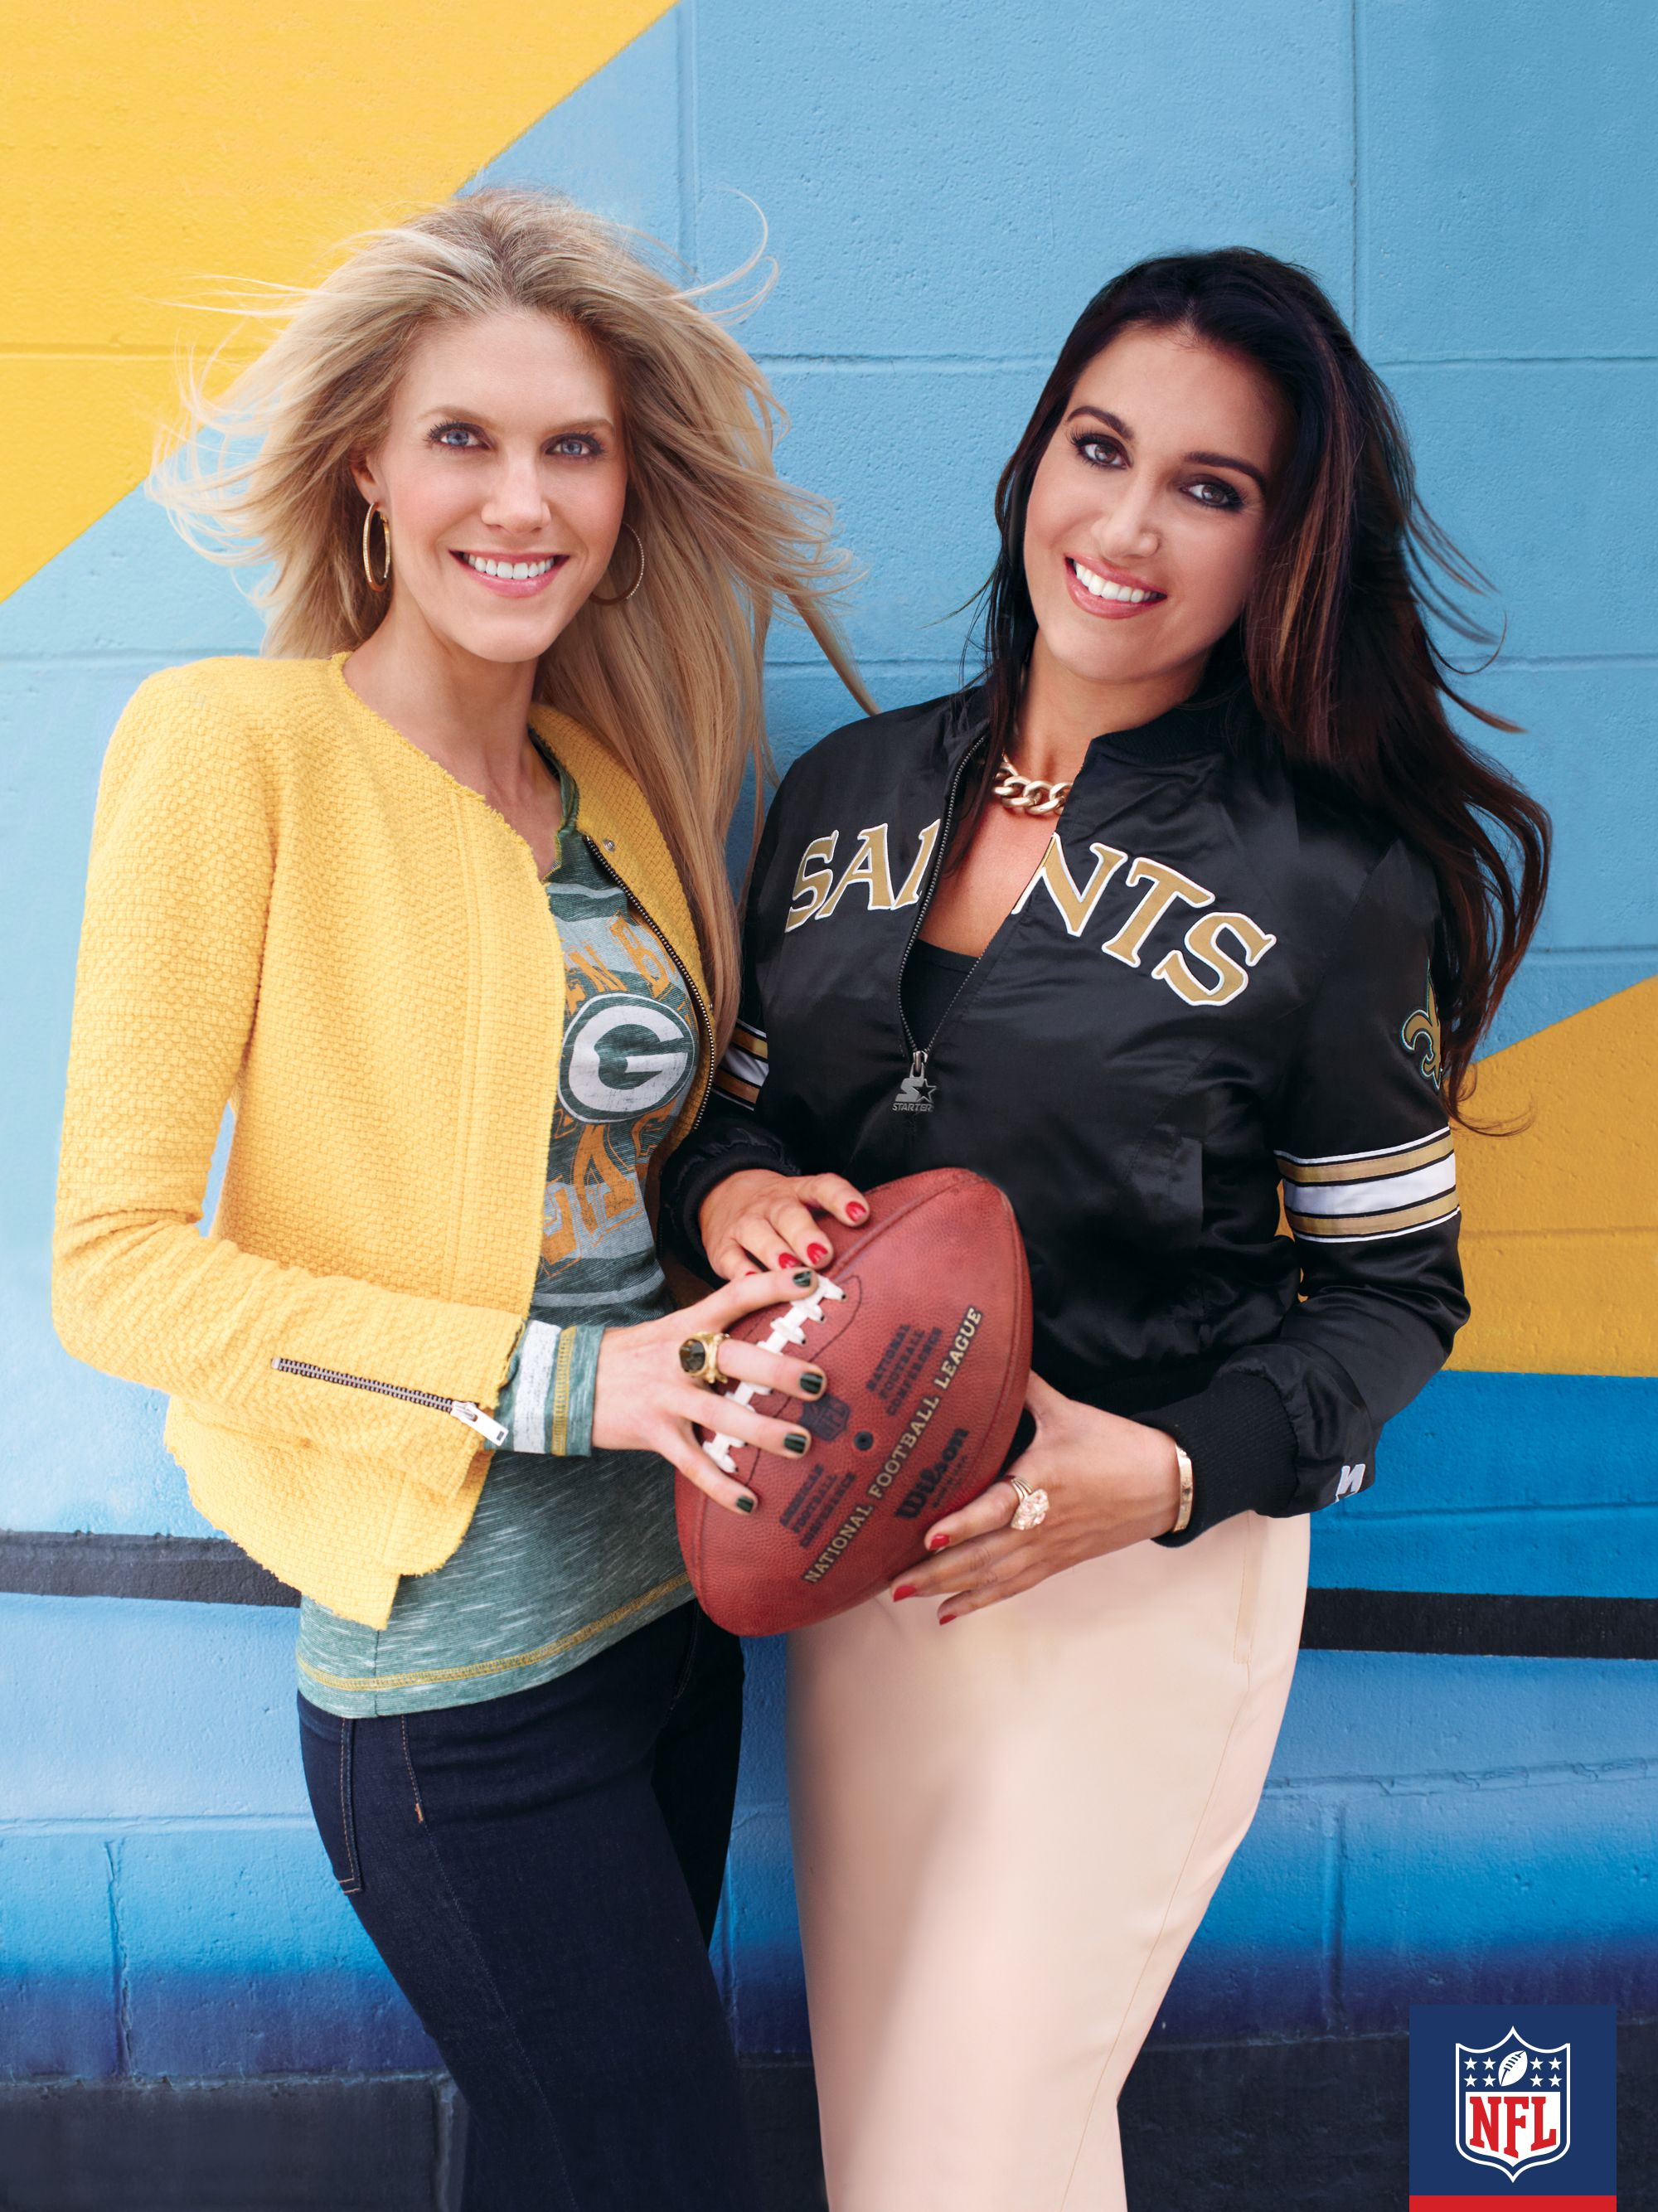 It's business and family with NFL-sibling Jennifer Matthews and NFL Network anchor Molly Qerim. Loving the way these two class-up some team #NFLFanStyle #contest